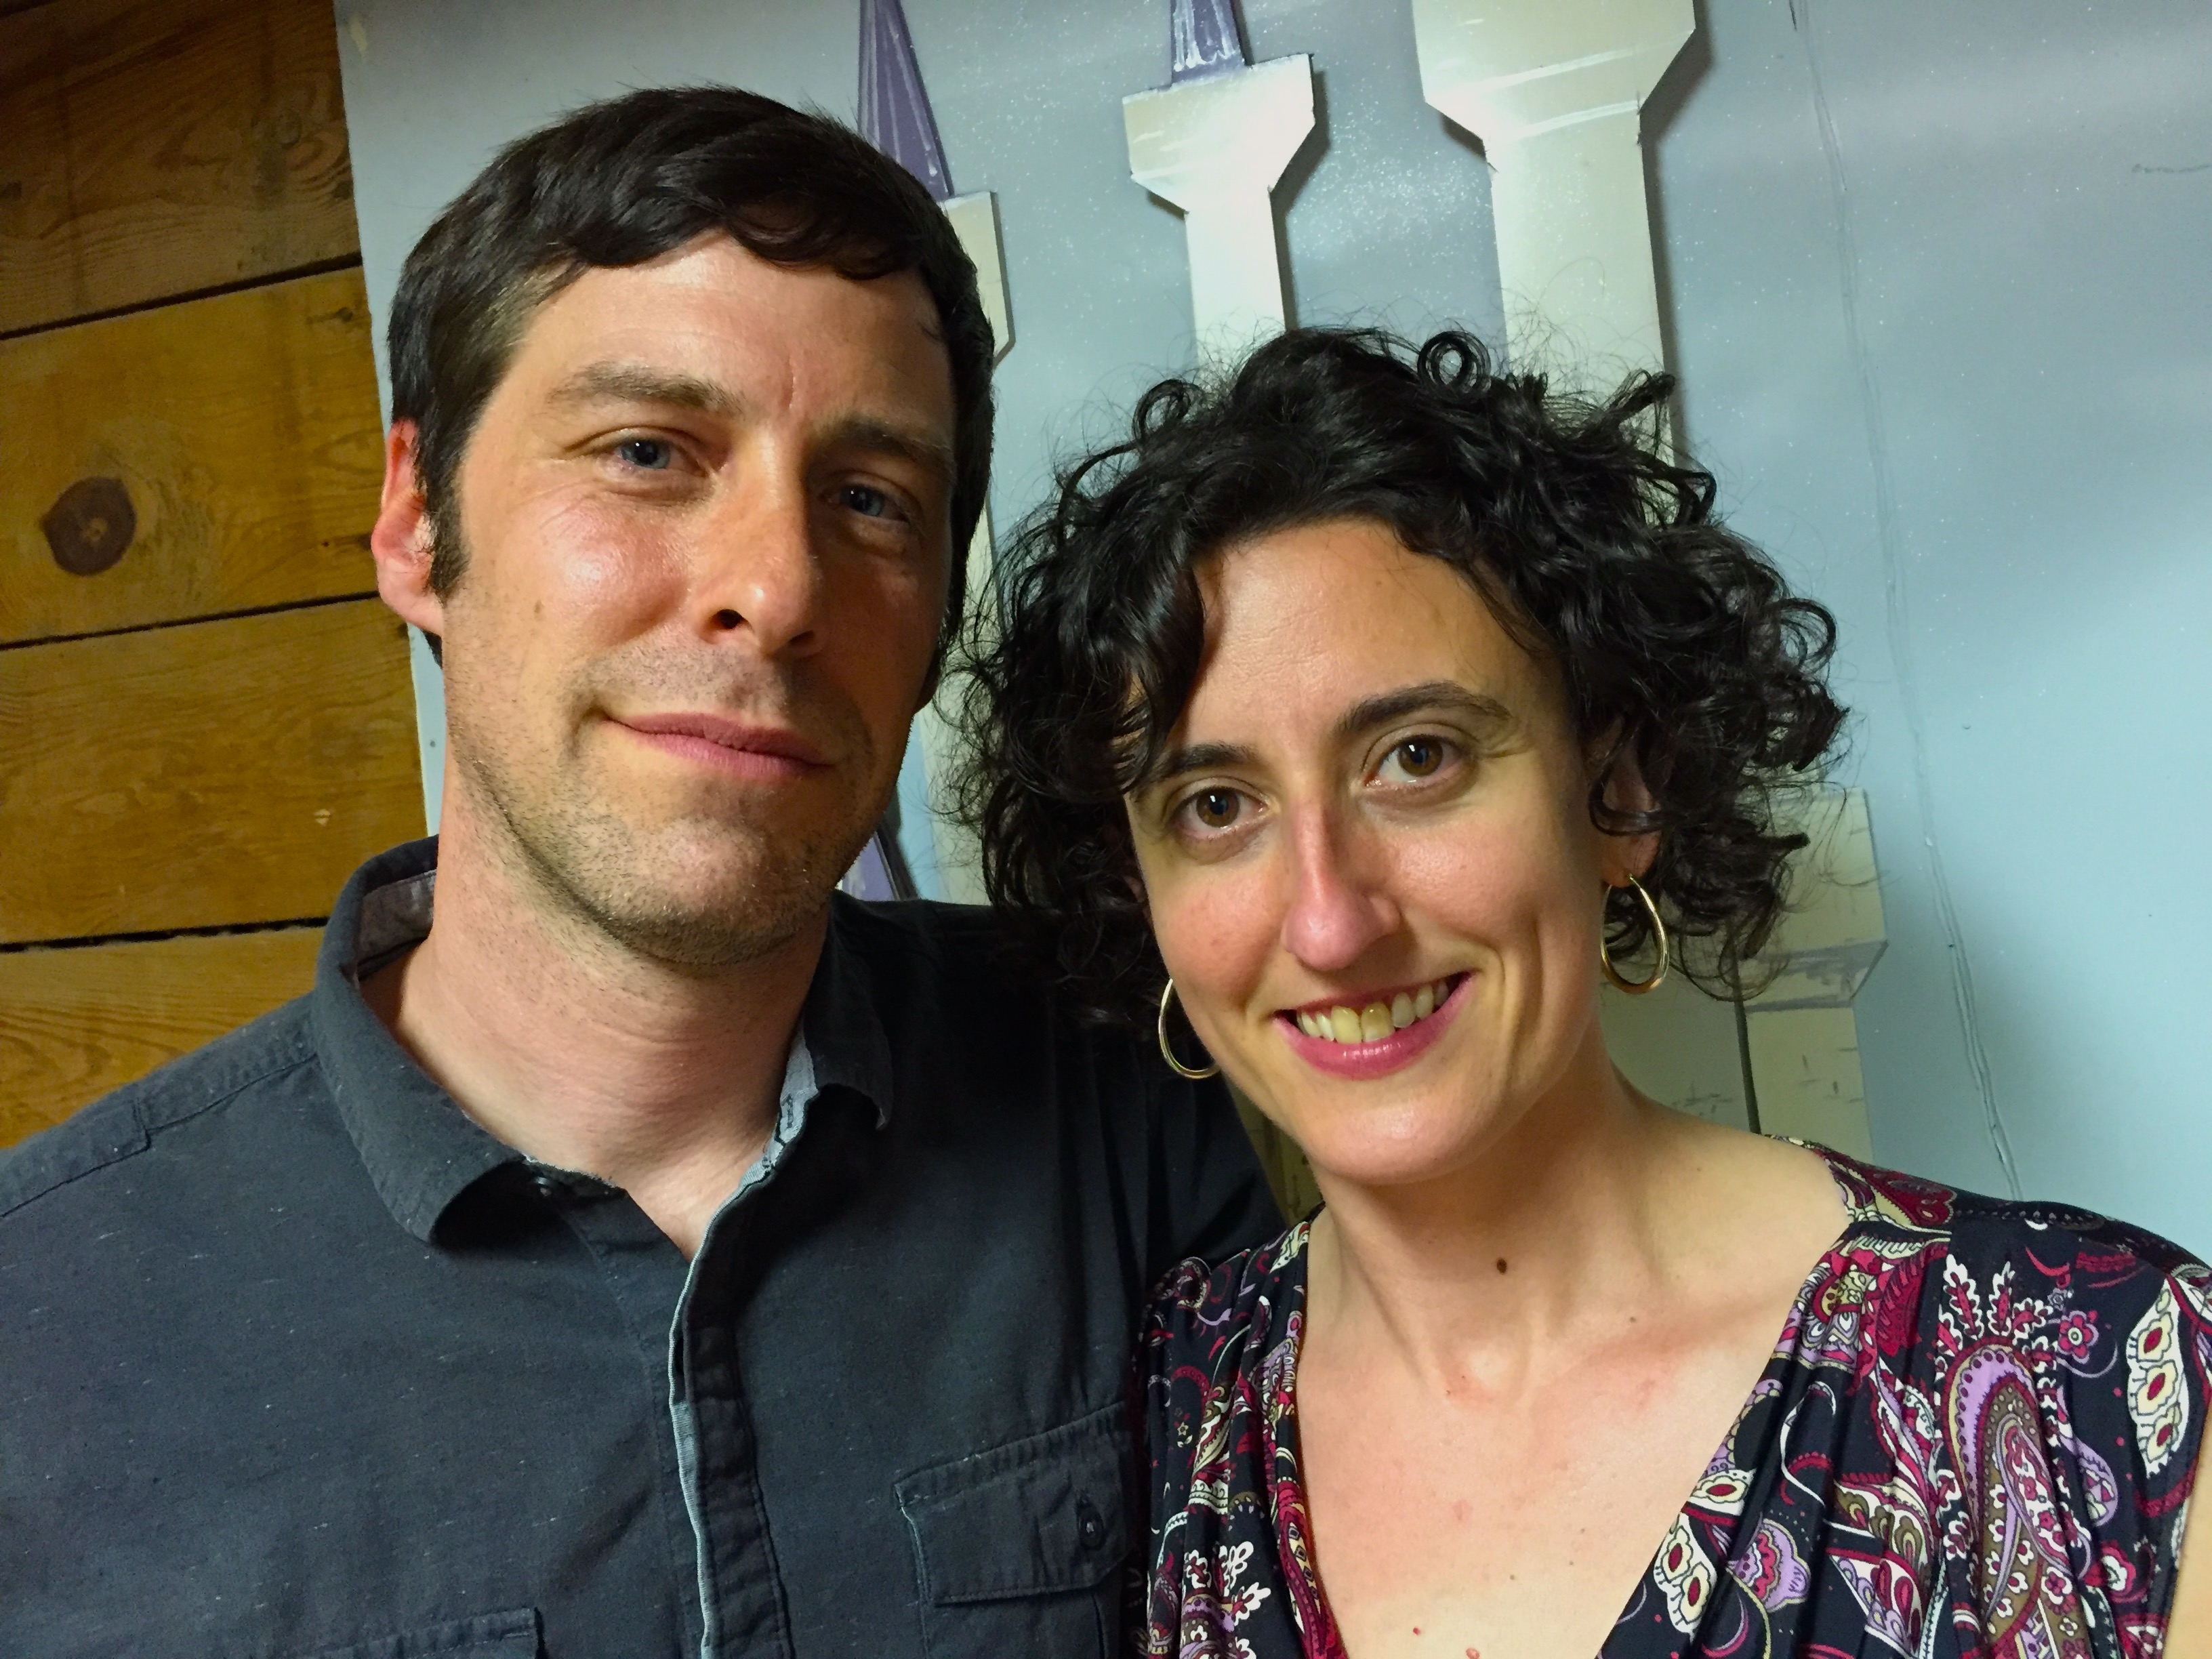 Caption: John Cloyd Miller and Natalya Zoe Weinstein are Zoe & Cloyd, a North Carolina-based roots music duo embodying the modern American musical story of multiple backgrounds and influences.  , Credit: Paul Brown